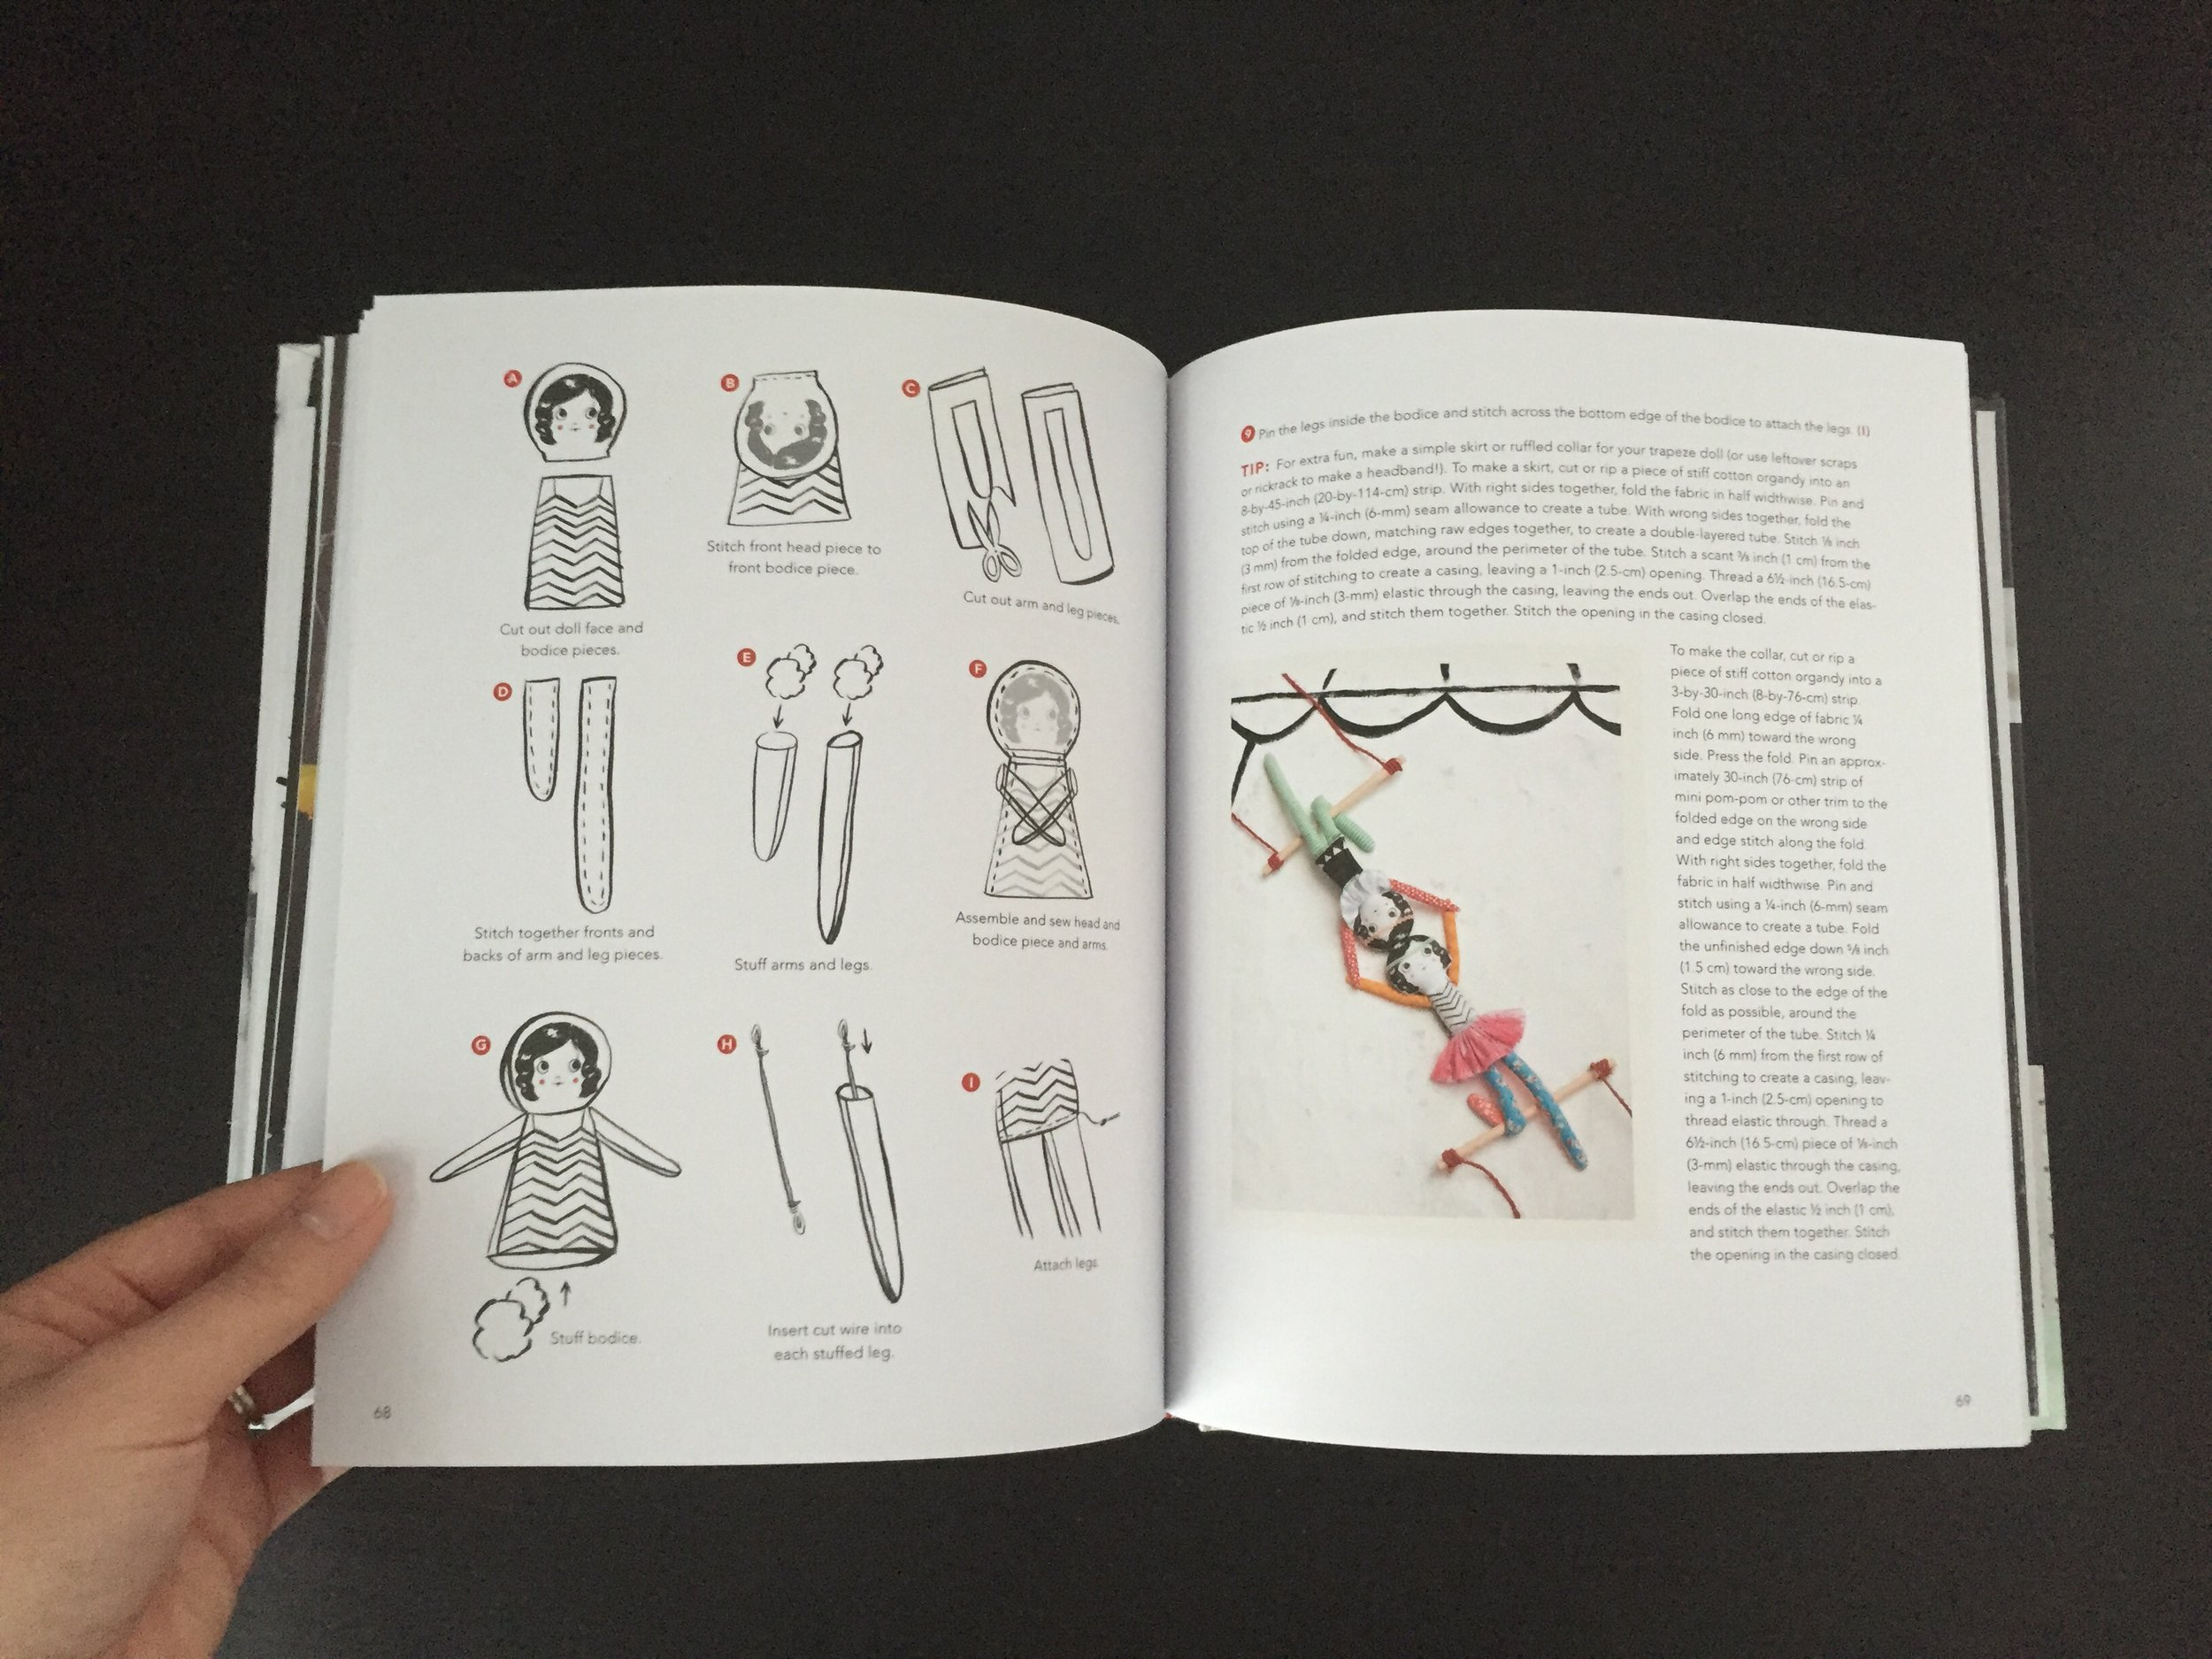 Playful Book Review | Cassia & Co.